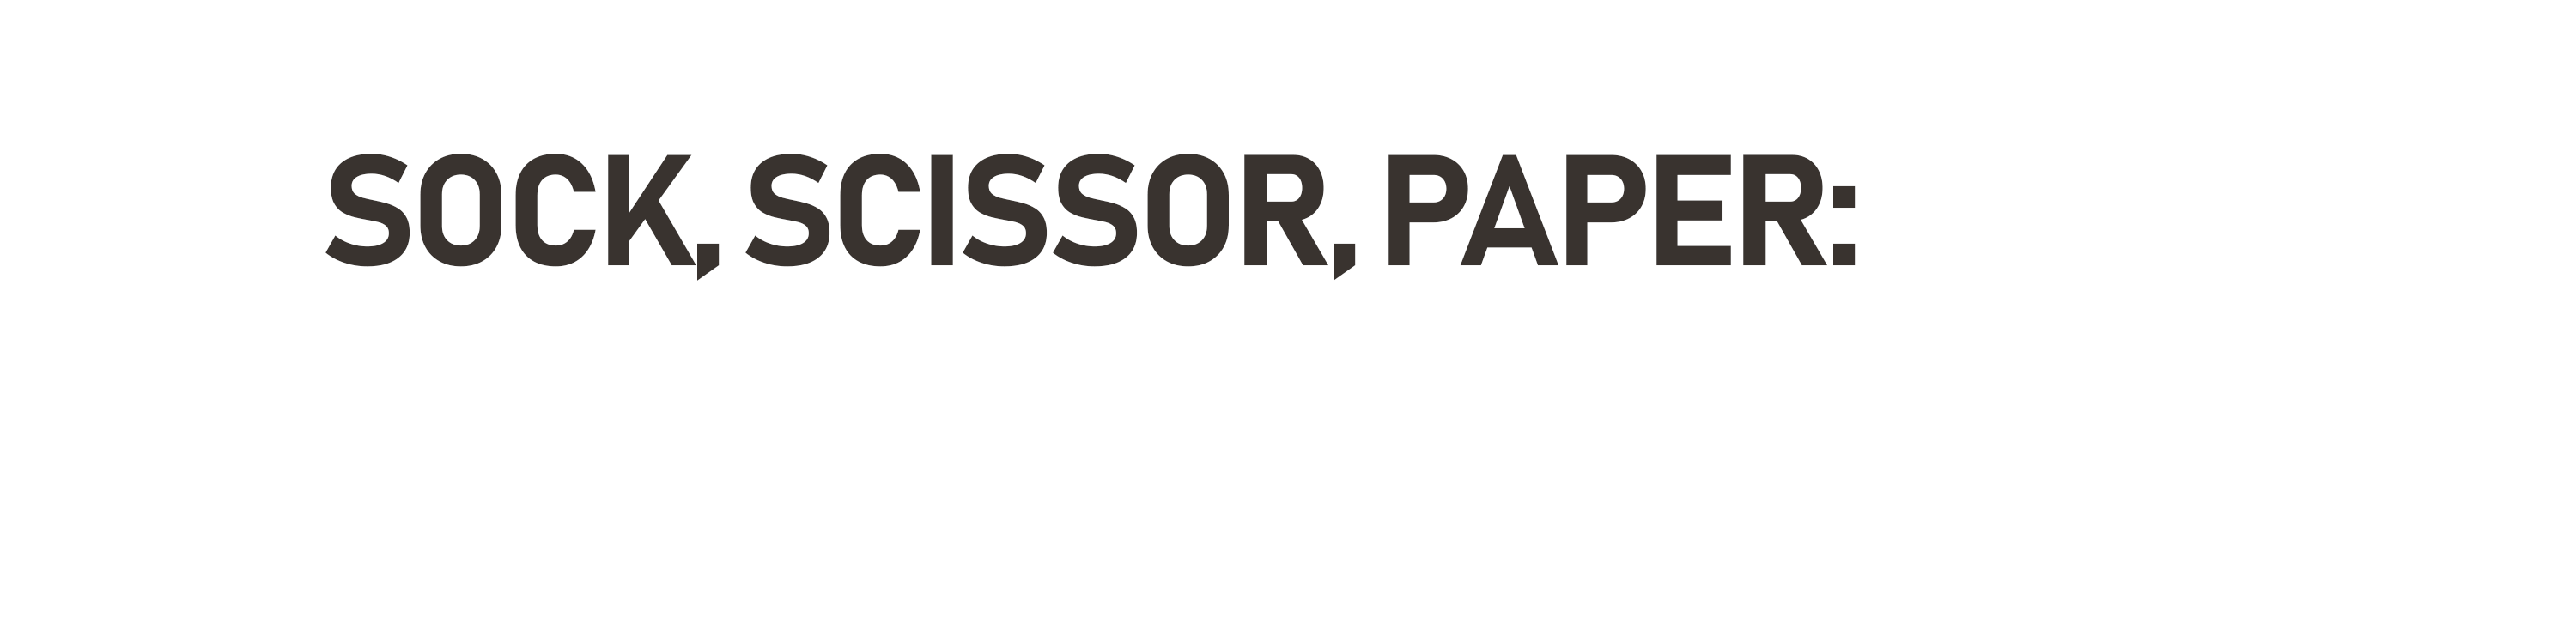 Sock, Scissor Paper: The Sandy Berger Caper